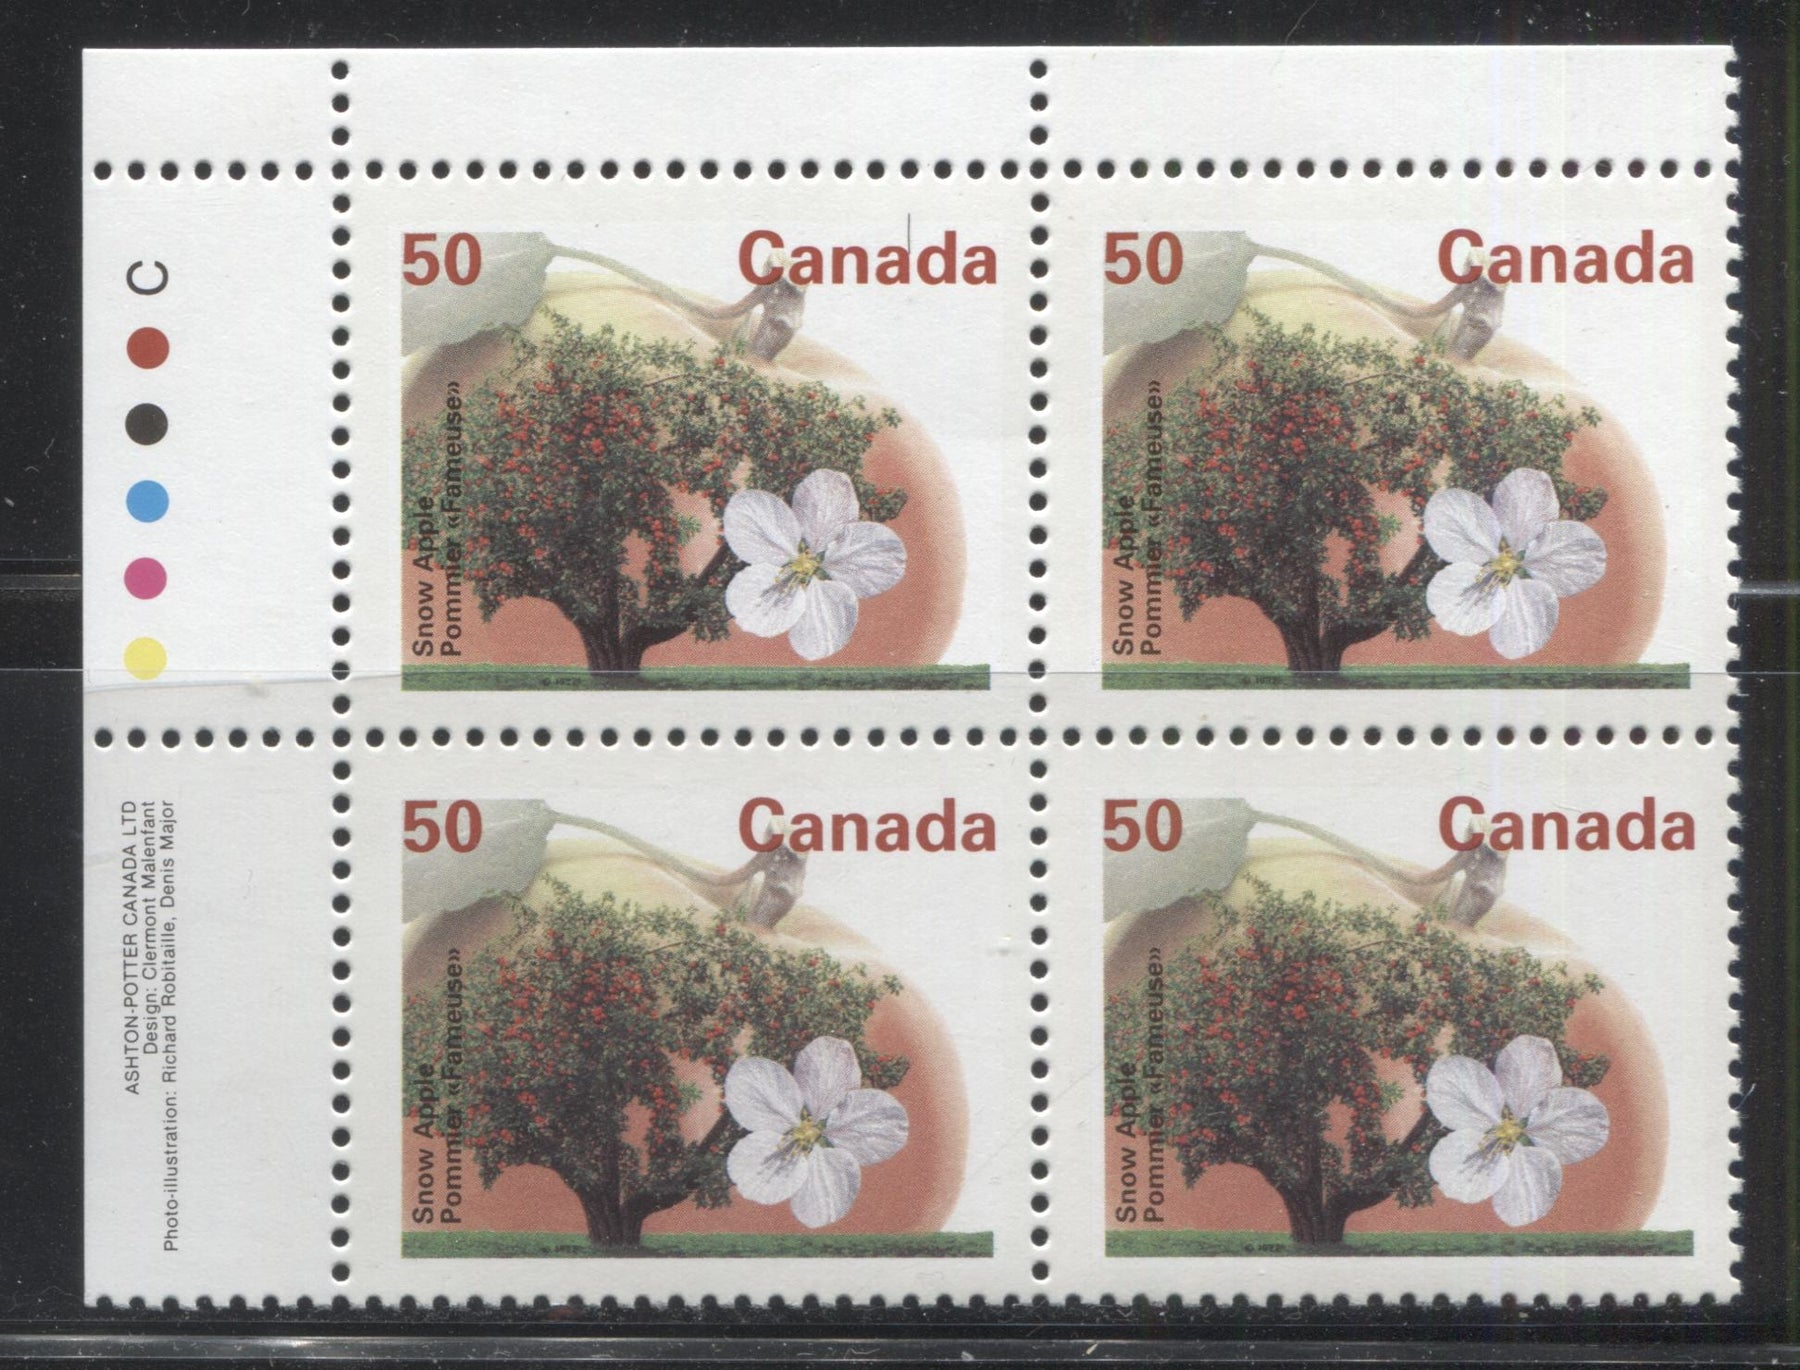 Canada #1365i 50c Snow Apple, 1991-1998 Fruit & Flag Definitive Issue, A VFNH UL Inscription Block, Perf. 13.1 on Dead/NF Coated Papers Paper